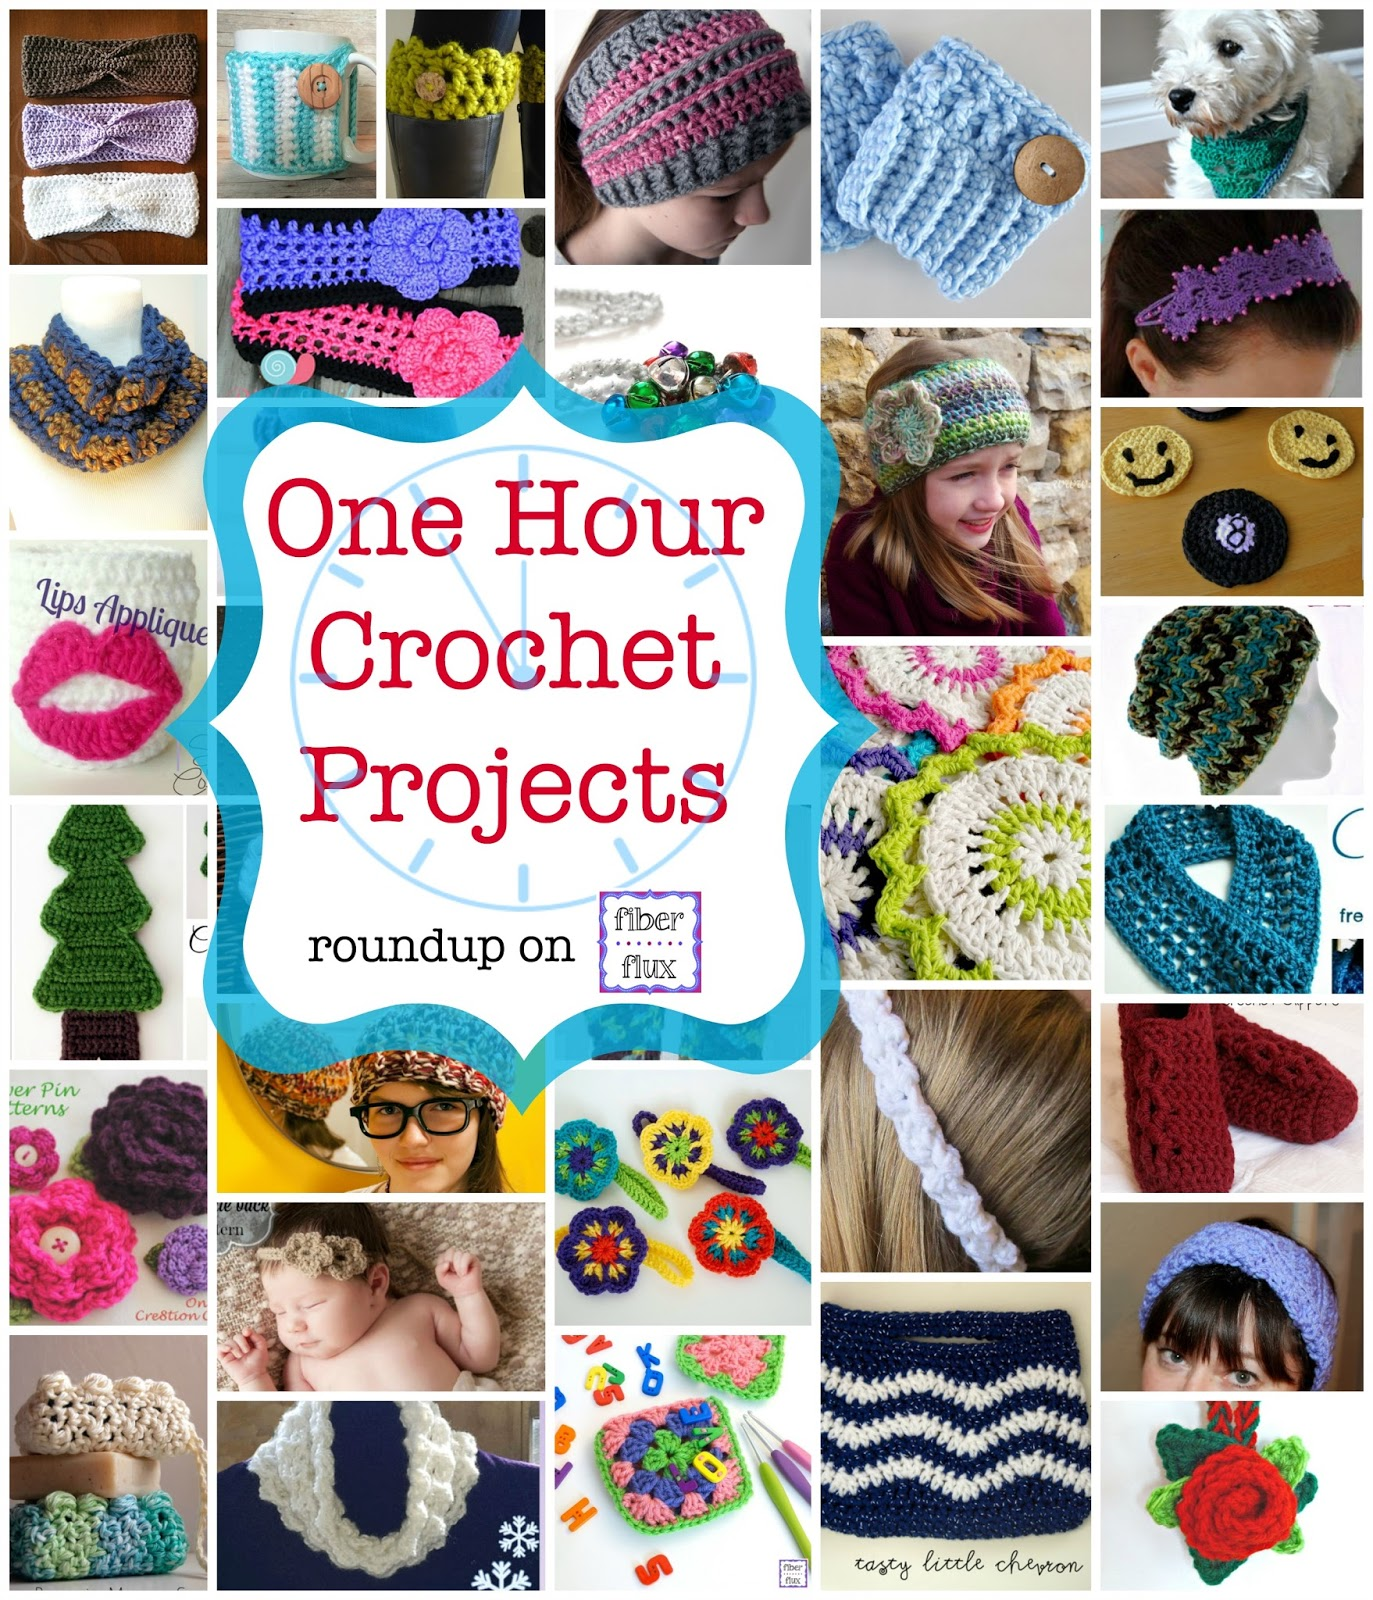 One Hour Kitchen Projects: Fiber Flux: Tick Tock! 35 One Hour Crochet Projects